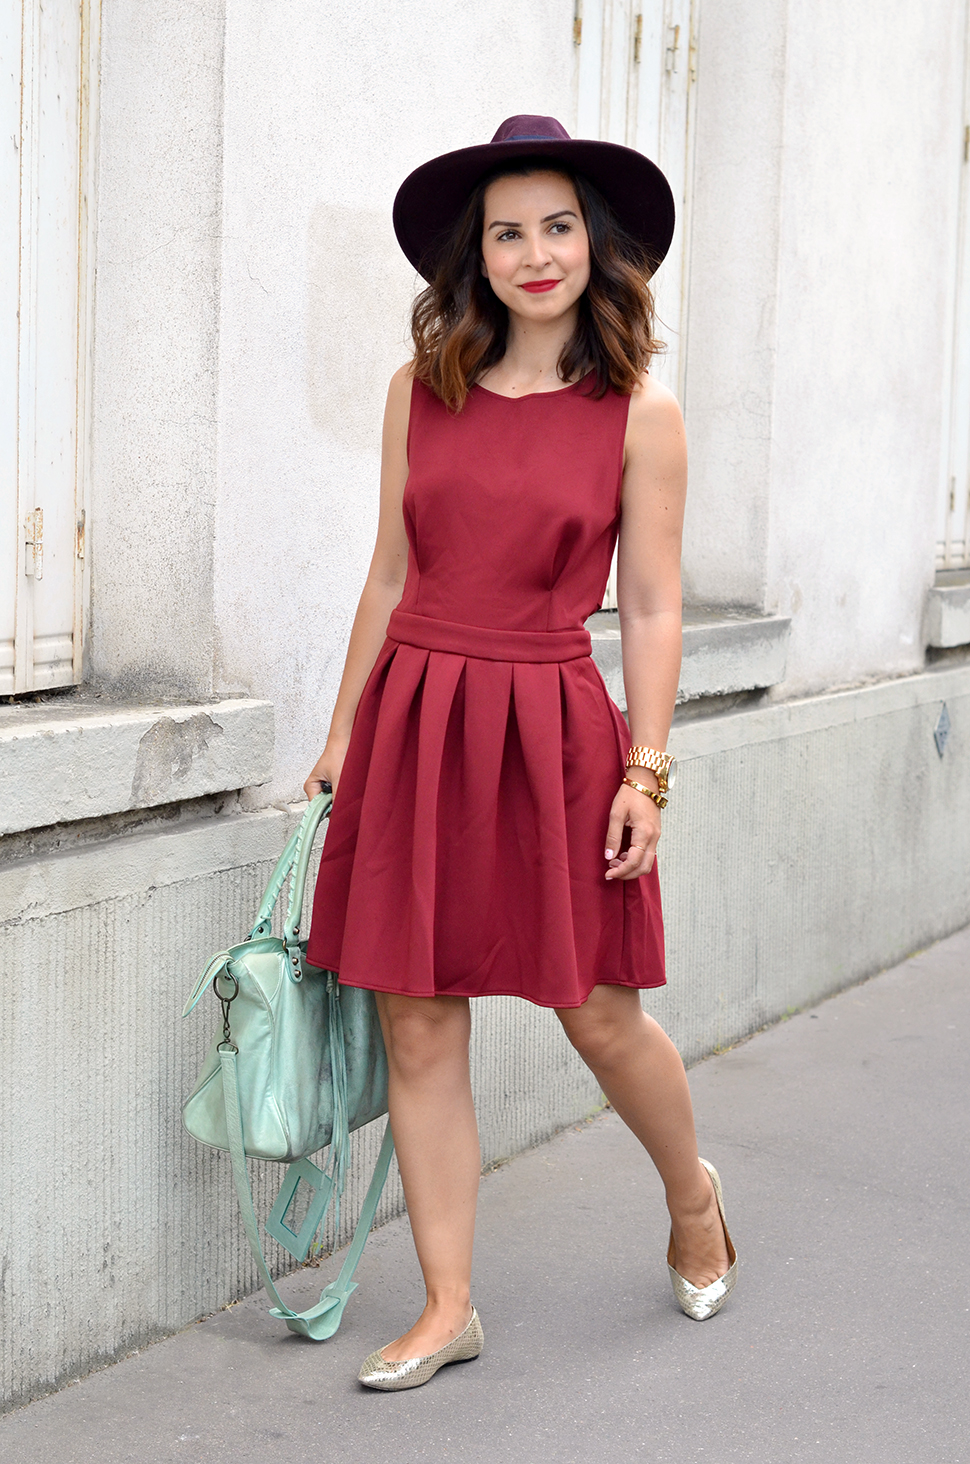 Helloitsvalentine_Burgundy_dress_8